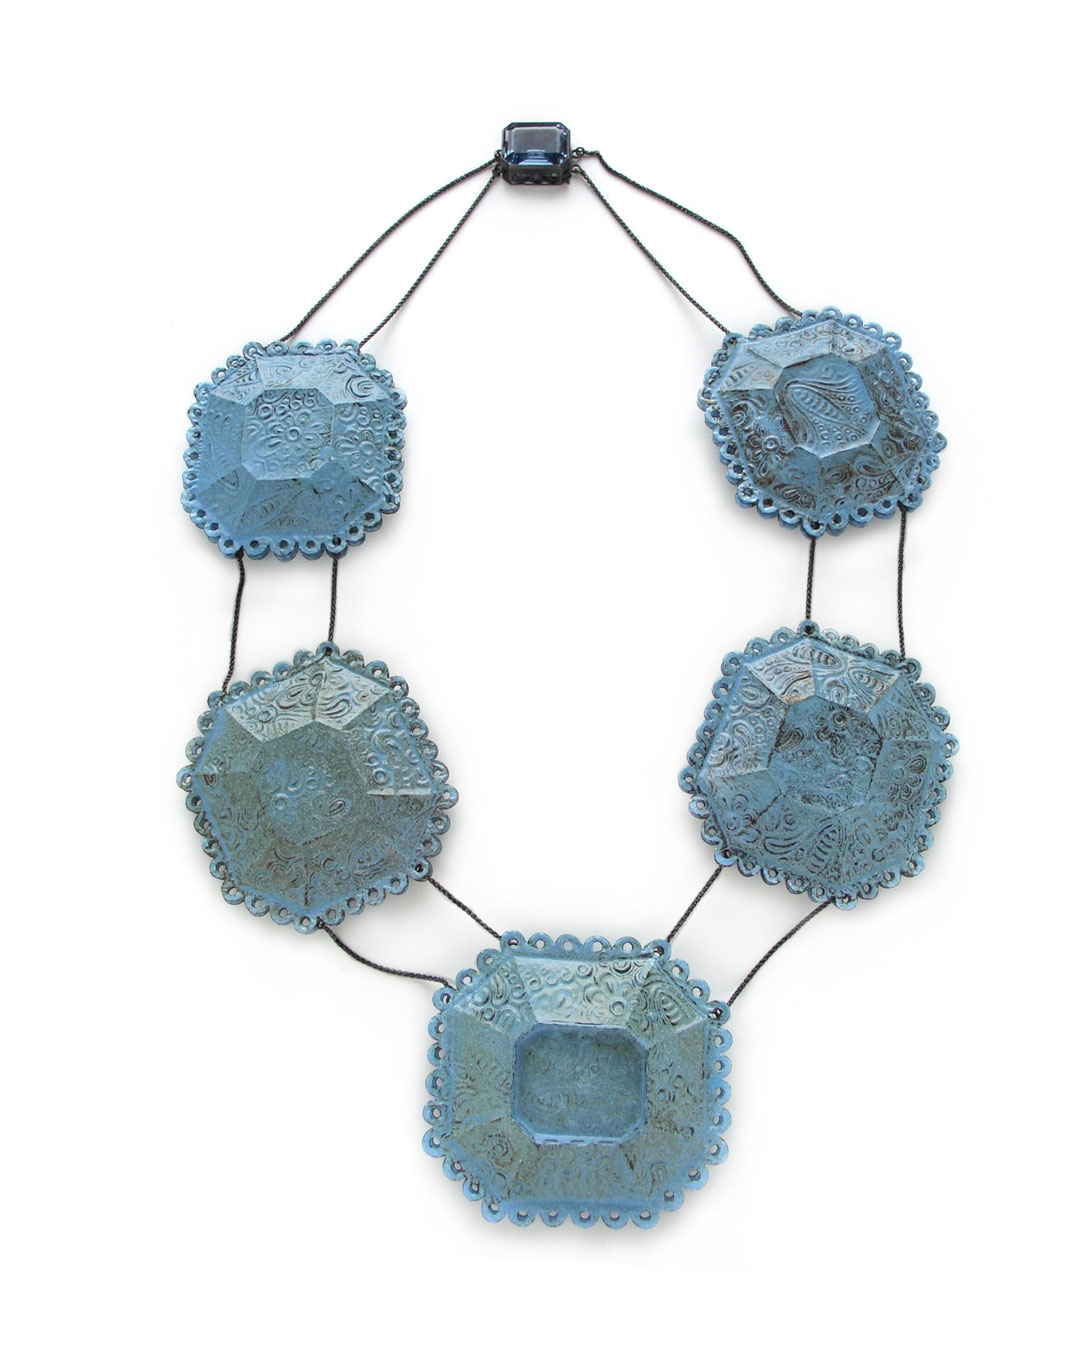 Vera Siemund, untitled, 2005, necklace; enamel, copper, synthetic spinel, H 300 mm, €4370